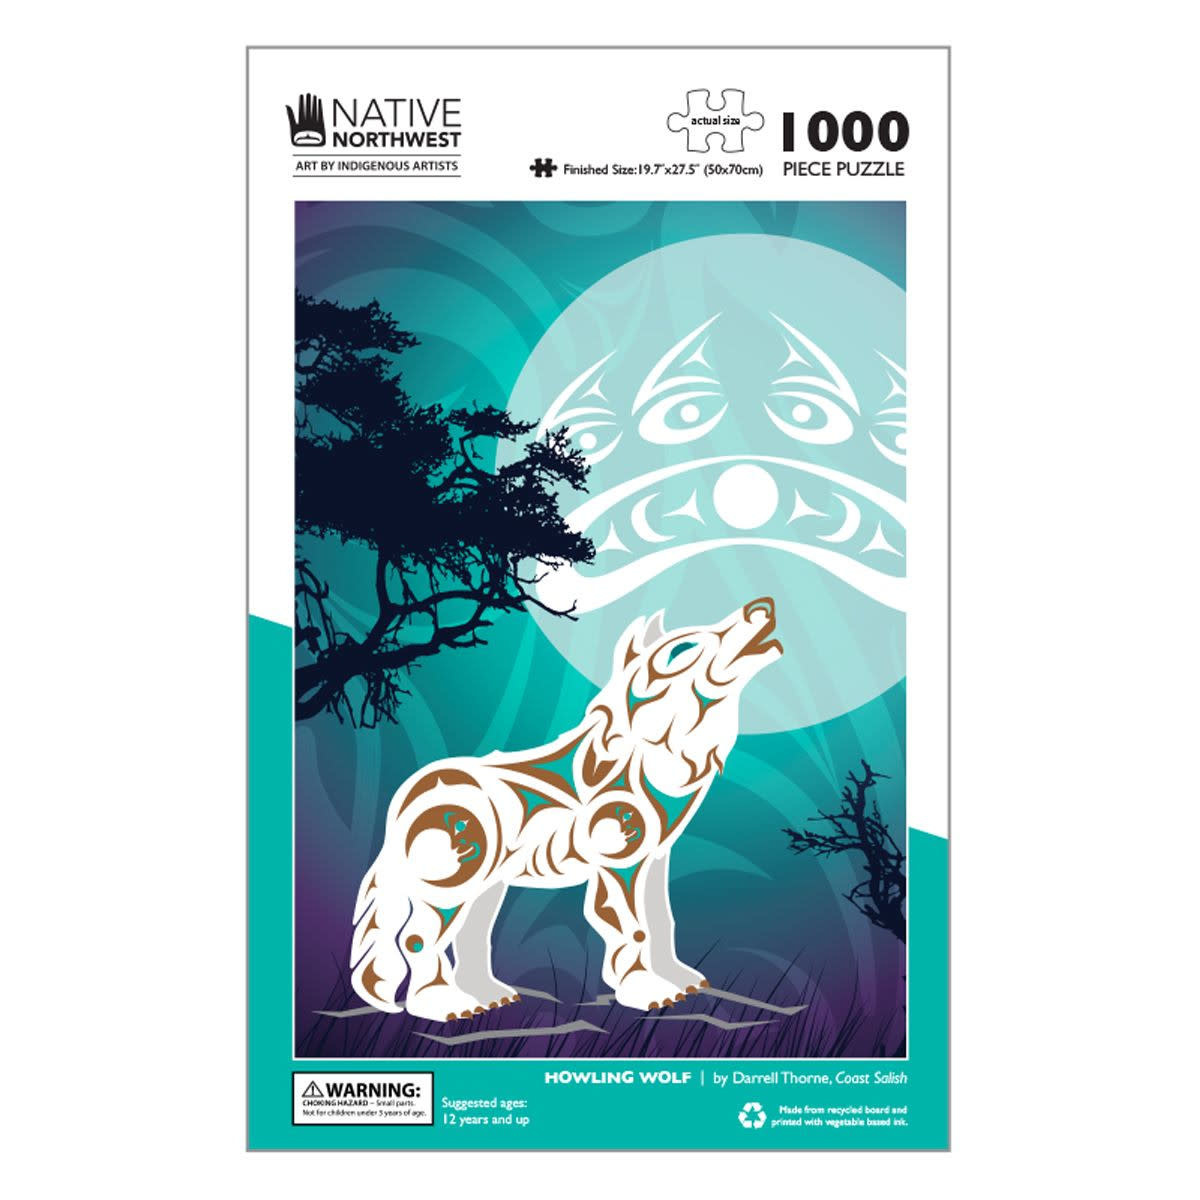 1000 pcs Puzzle - Howling Wolf by Darrell Thorne-2